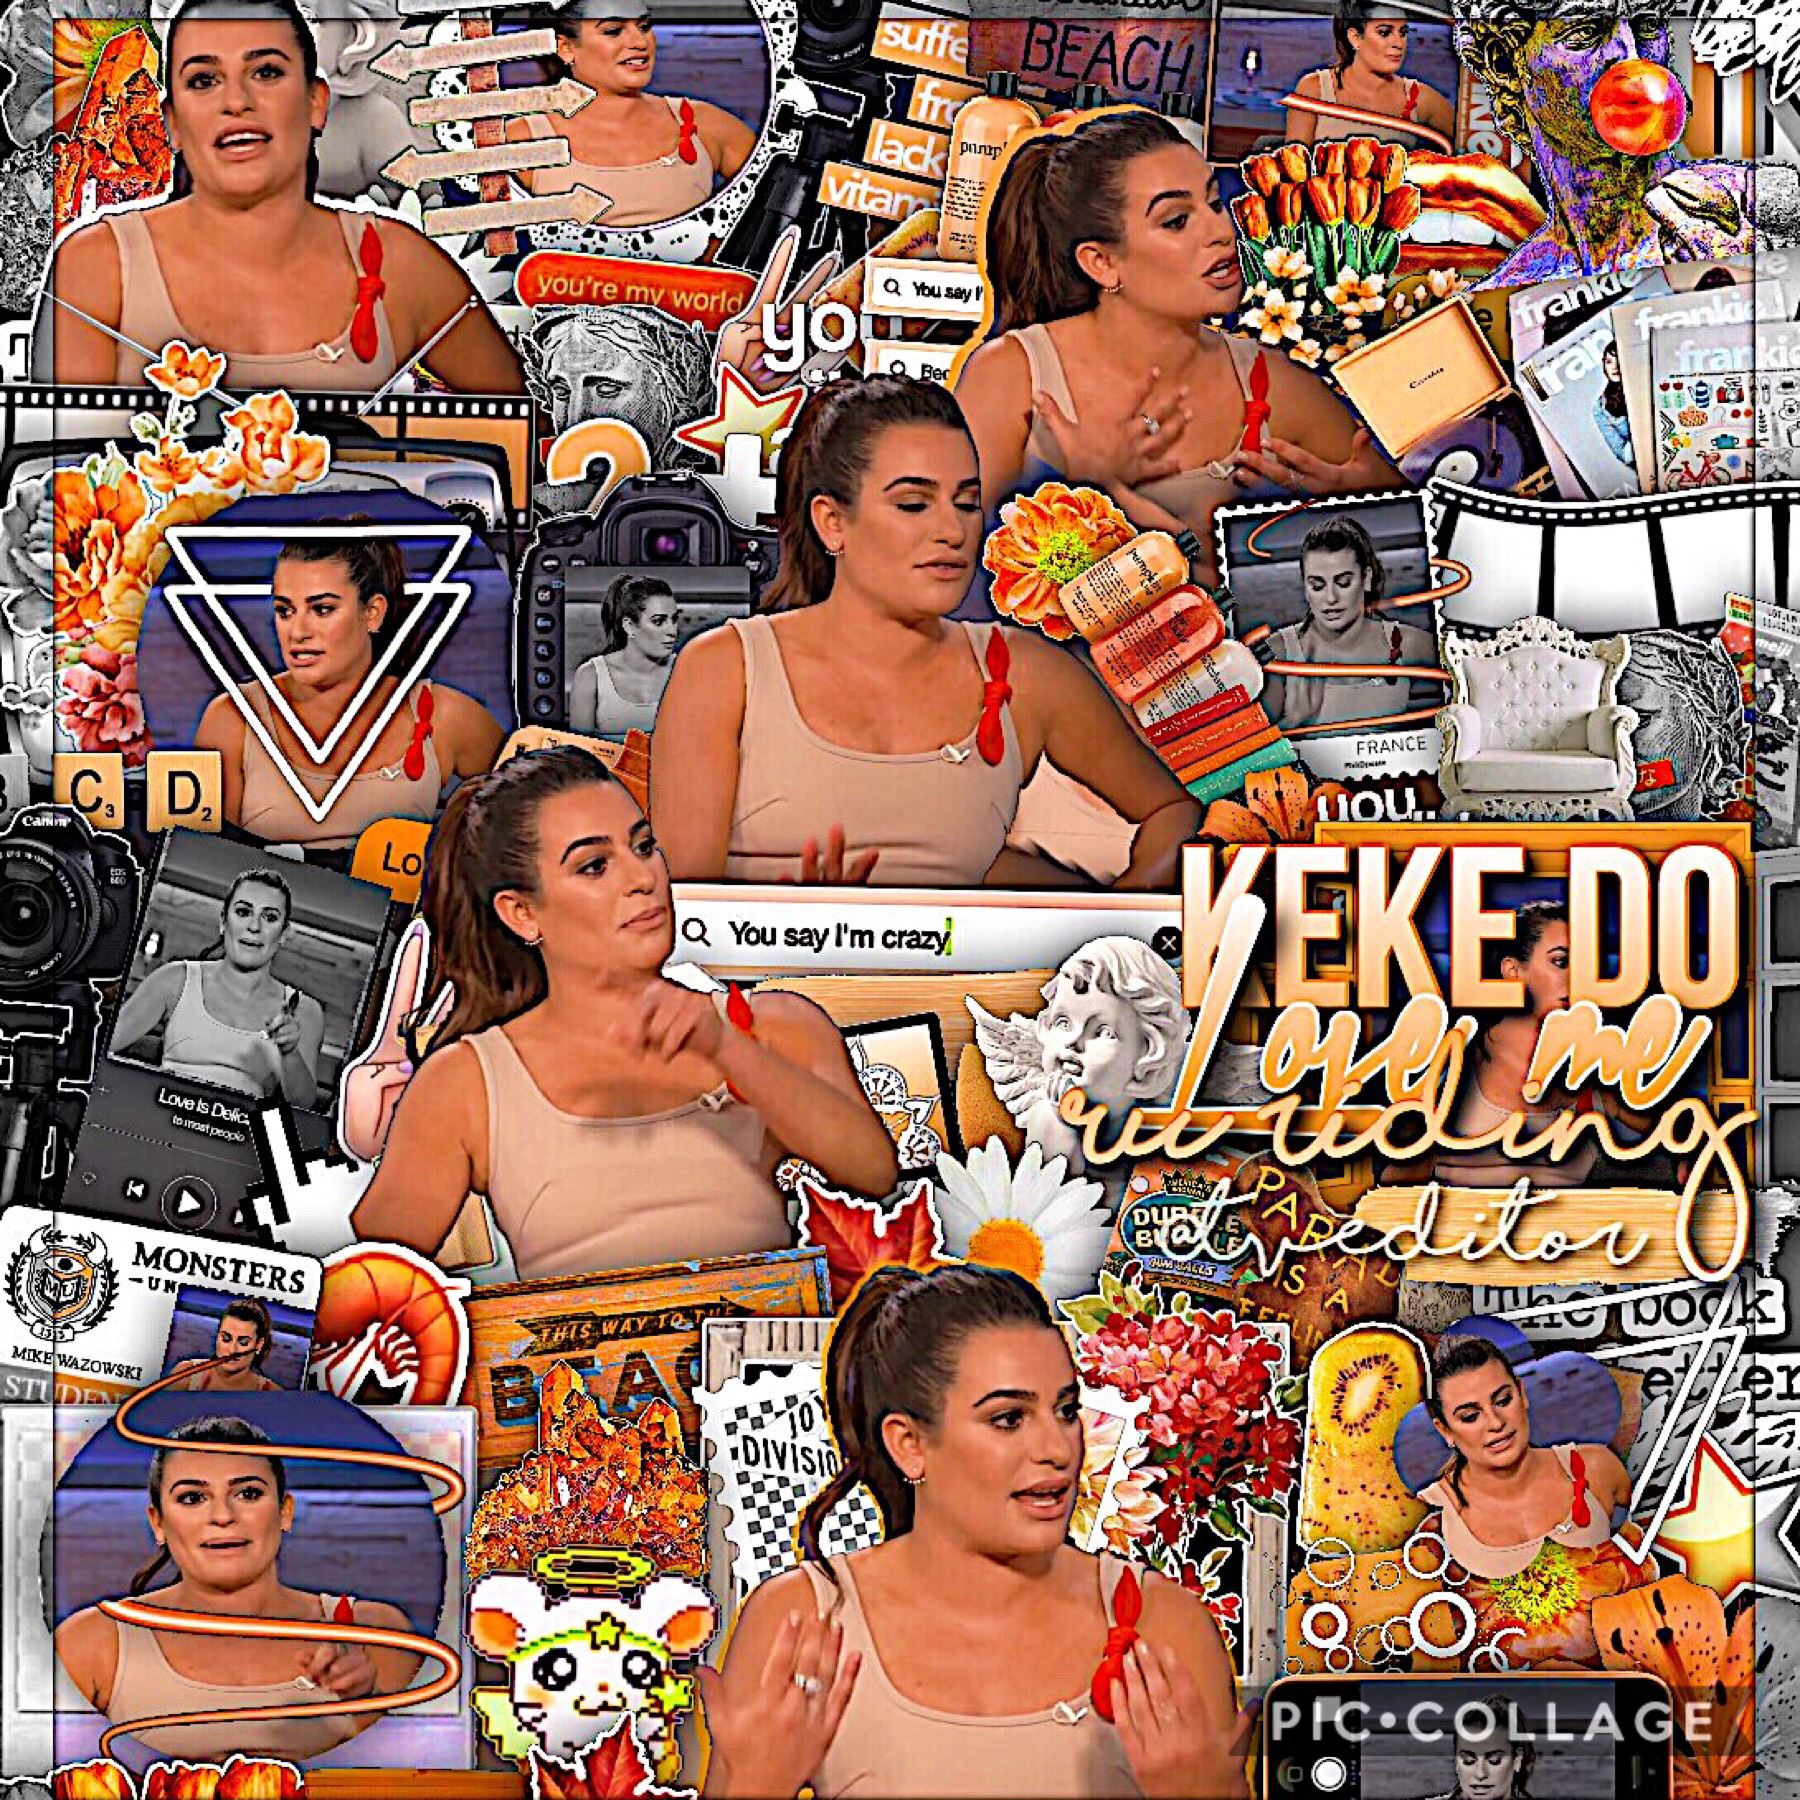 queen of glee 🧡 first post of my fall theme my sister was begging me to this but ya 🍂 2 days until school starts and I'm not ready 💀 but i already created some edits Incase I'm busy :) 3:09 am <- the time I posted